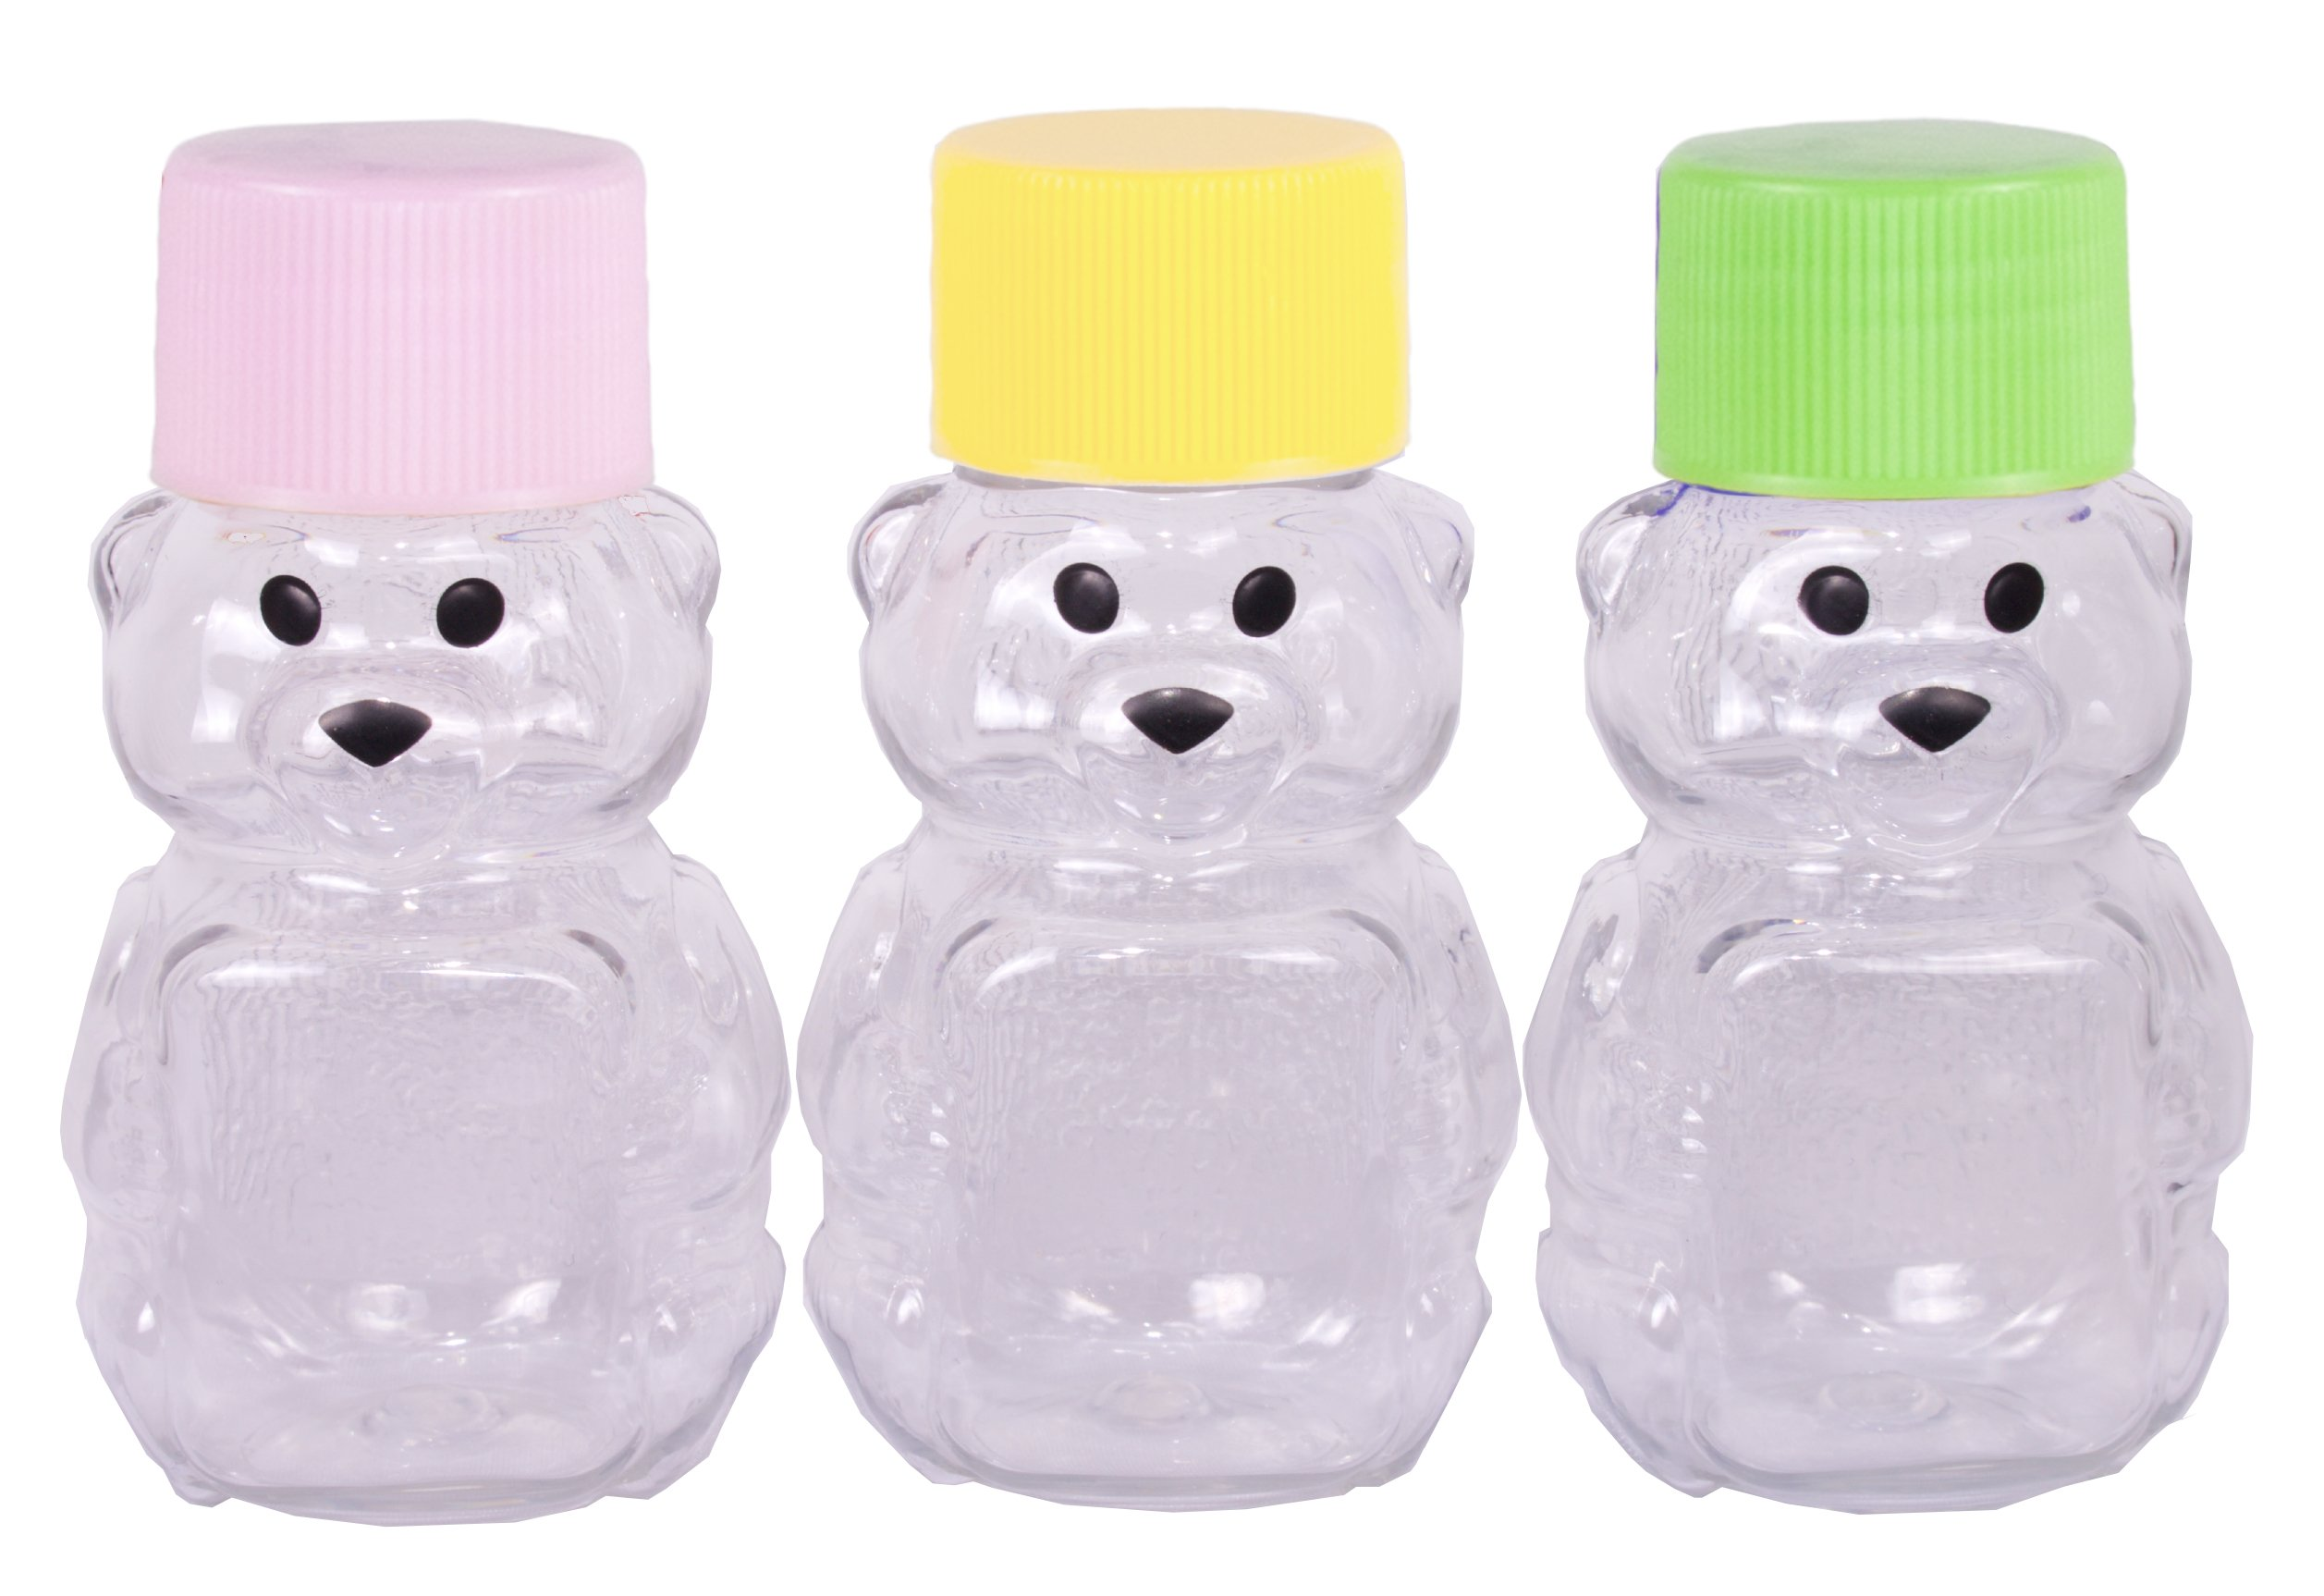 2-ounce RetroPak Plastic Panel Bear Easter Spring Variety 24-Pack (Lime green, yellow and pink caps)